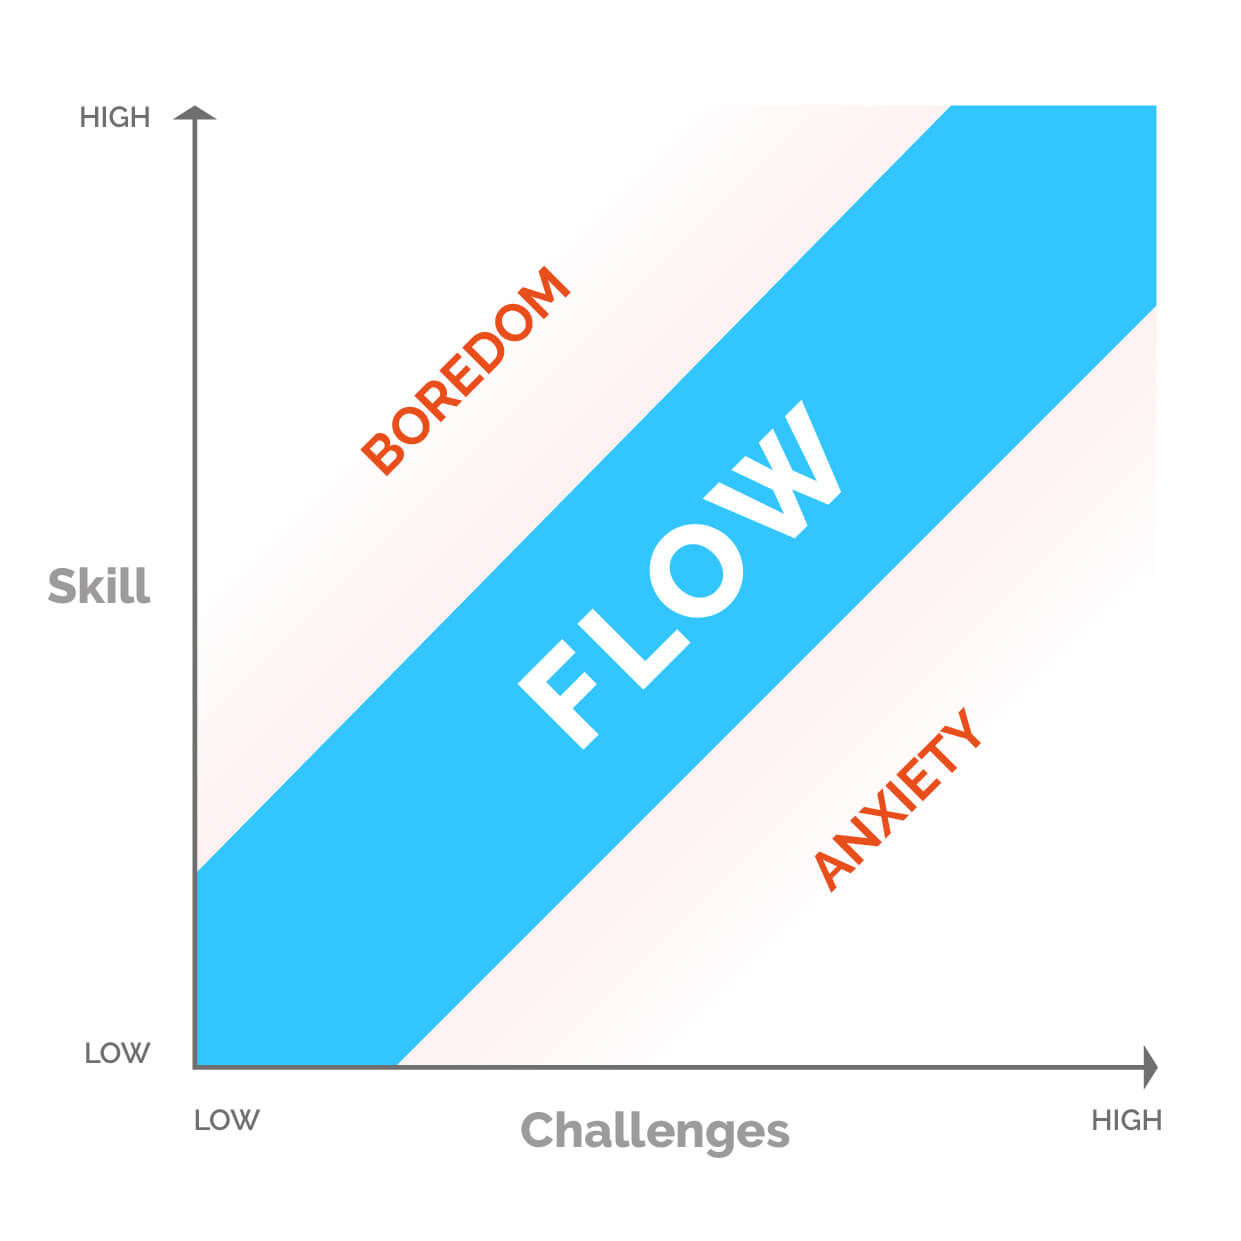 Graphic adaptation from Csikszentmihalyi (1975/2000) model of flow state